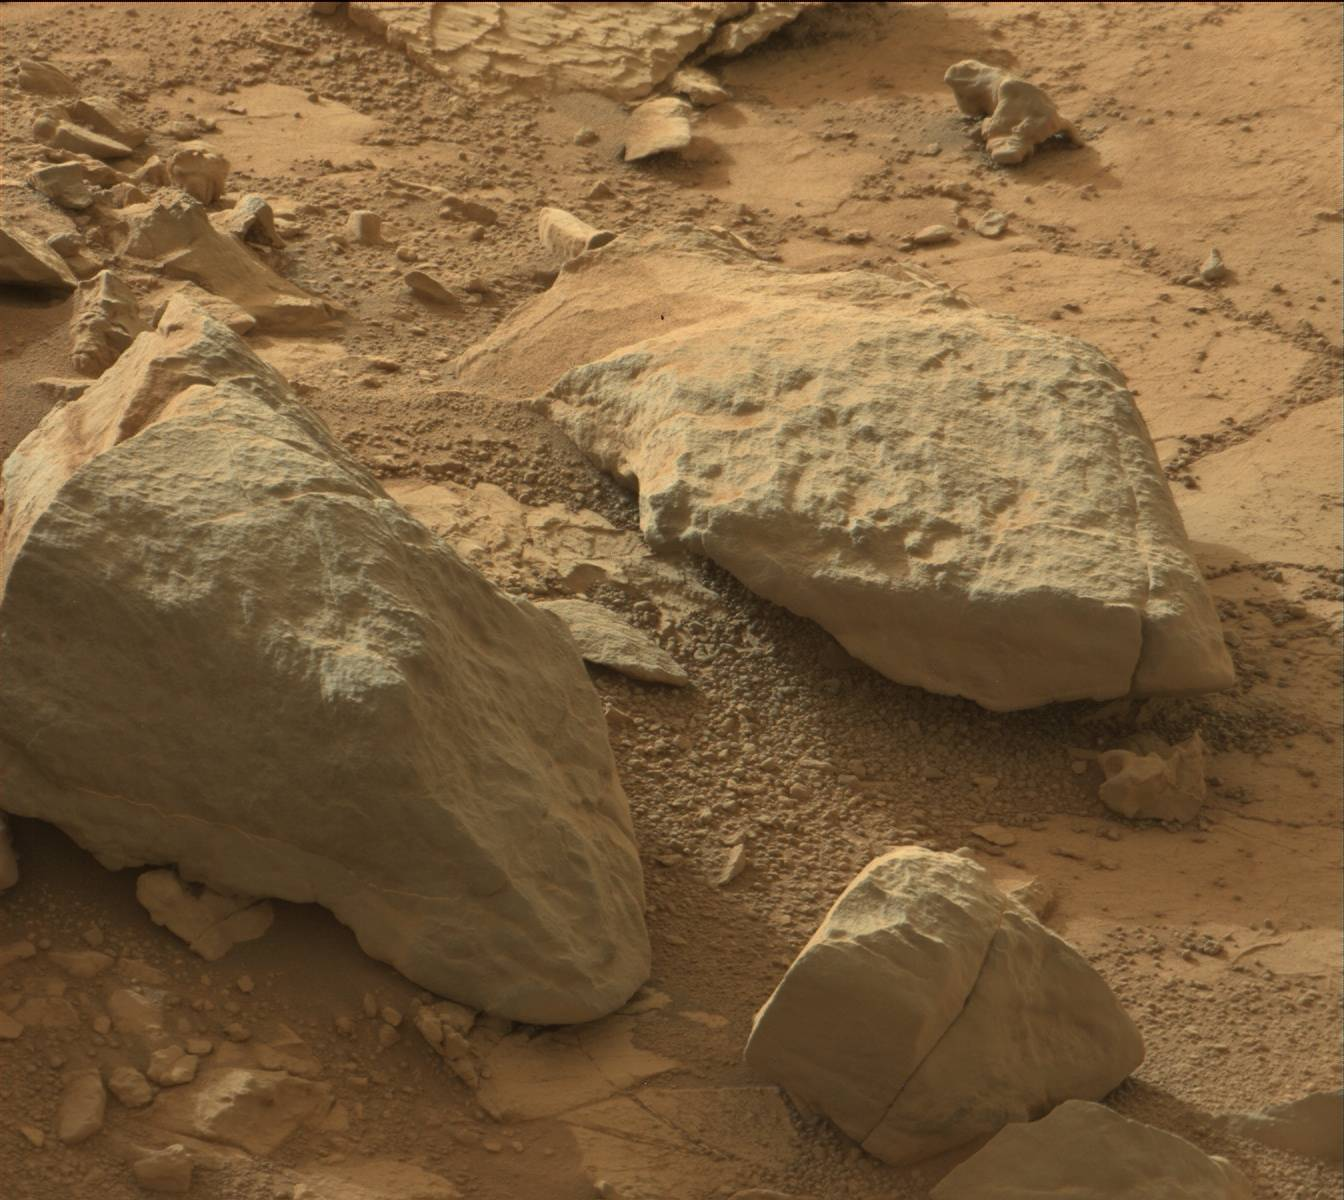 nasa mars lizard - photo #16